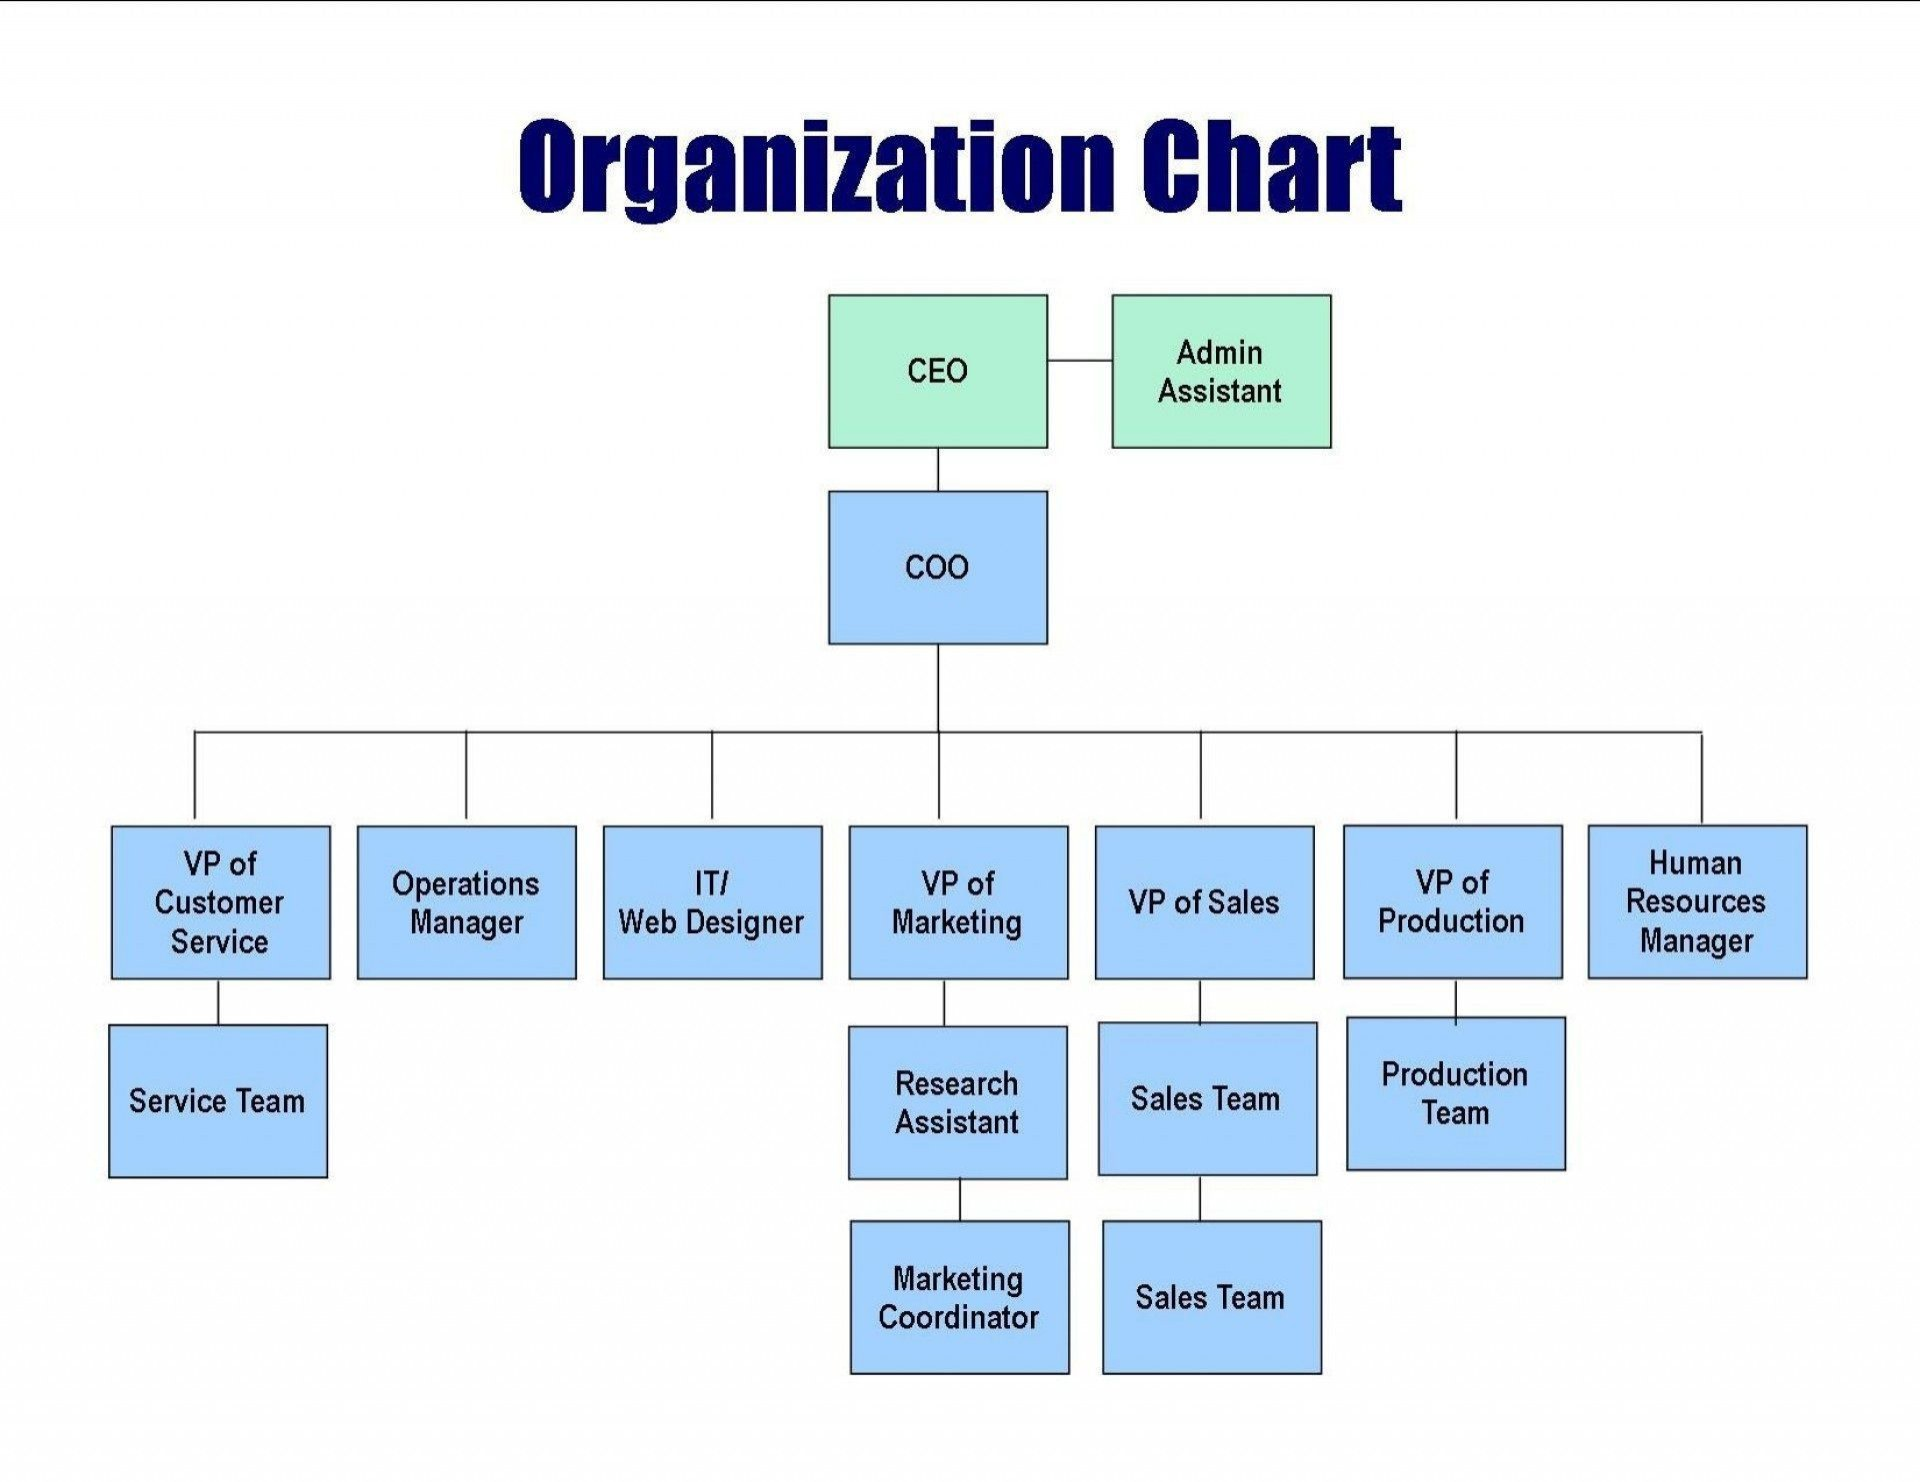 009 Unbelievable Organization Chart Template Word 2013 Photo  Organizational Microsoft In1920